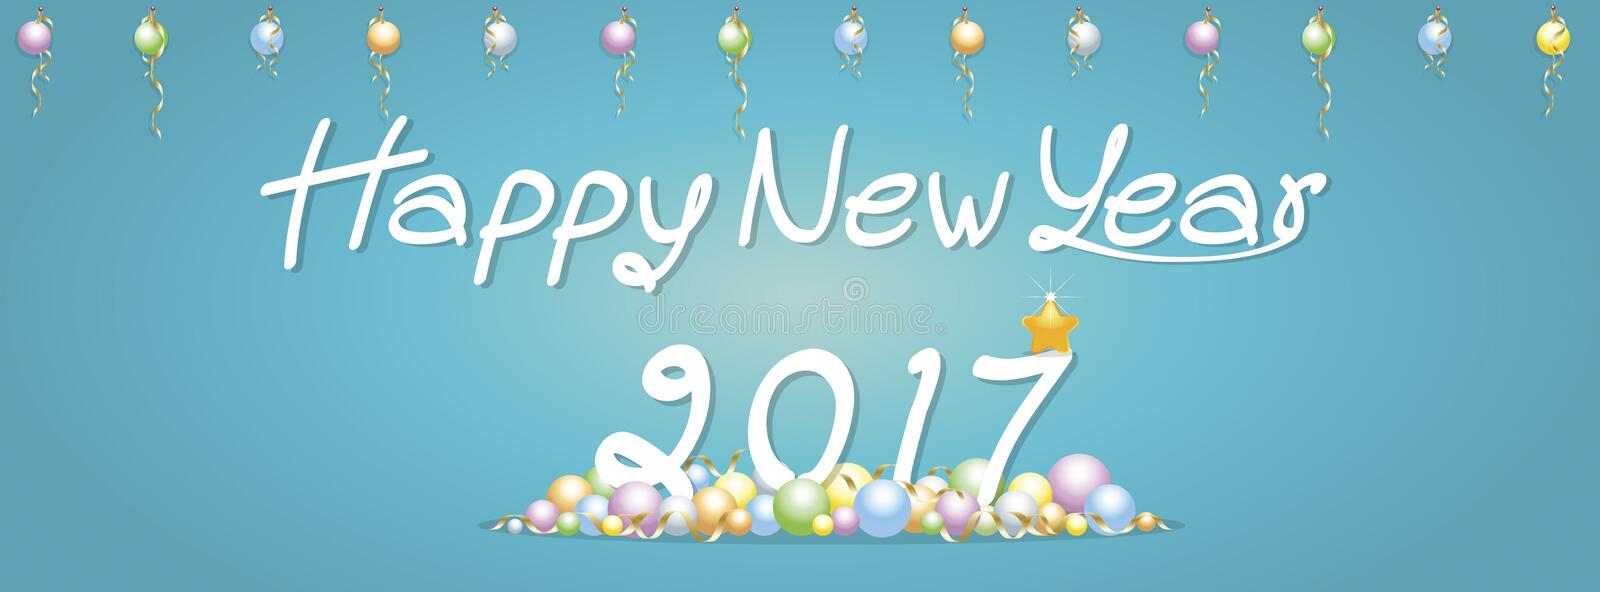 Background Happy New Year greetings royalty free stock photography